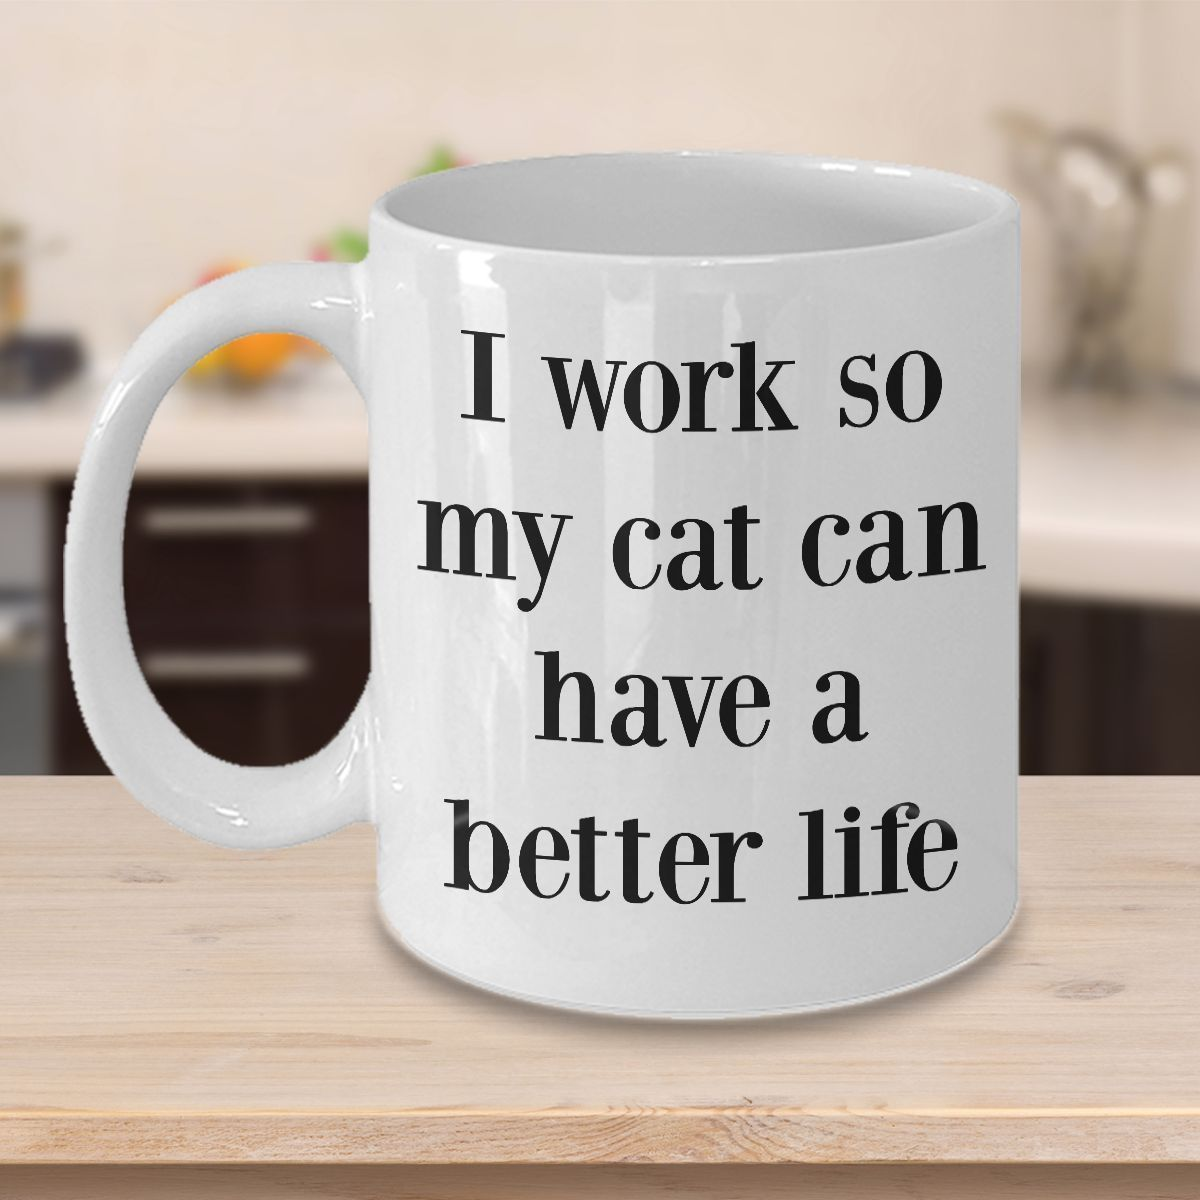 I Work So My Cat Can Have Better Life - Funny White Ceramic Coffee Mug Tea Cup - $13.88 - $15.97